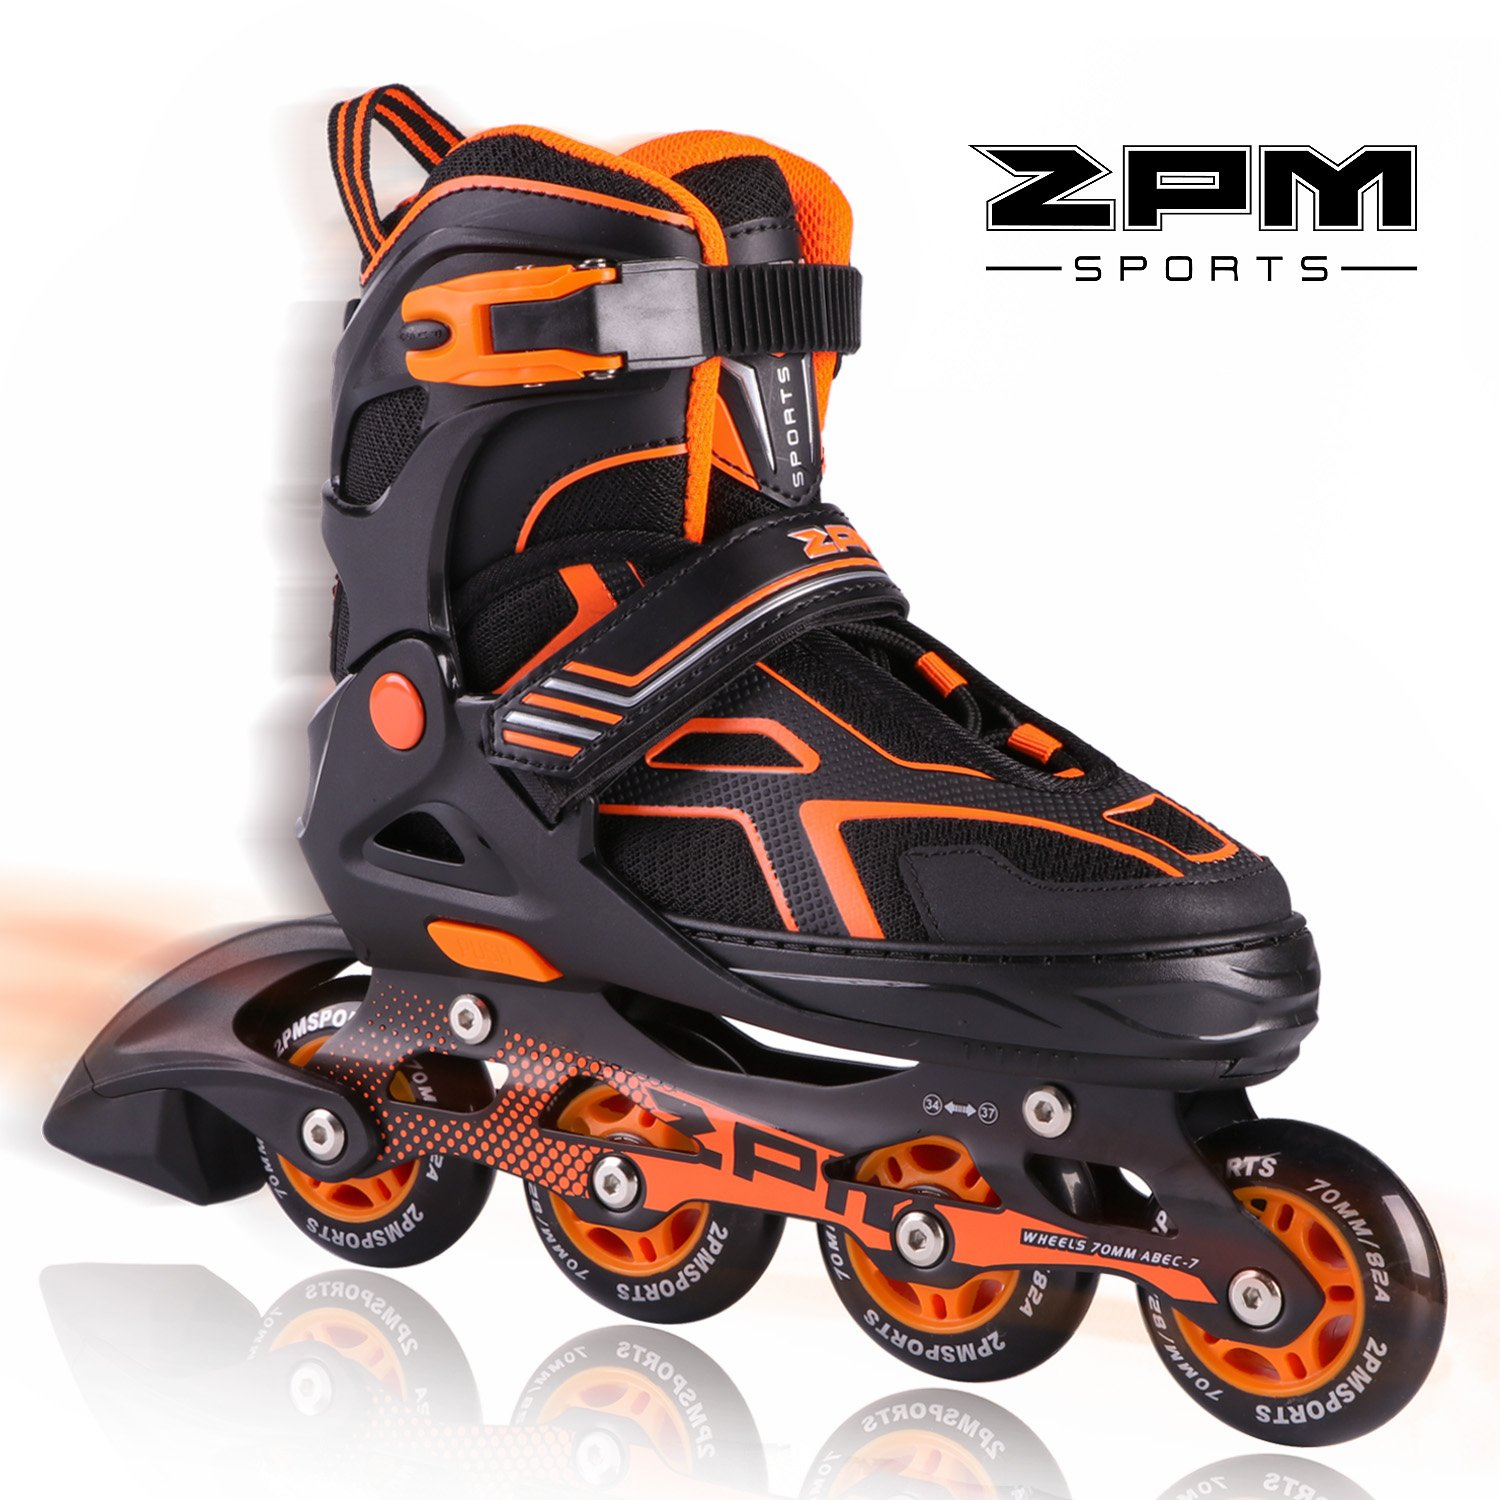 2PM SPORTS Torinx Orange Black Boys Adjustable Inline Skates, Fun Skates for Kids, Beginner Roller Skates for Girls, Men and Ladies - Medium (US 2-5) by 2PM SPORTS (Image #1)